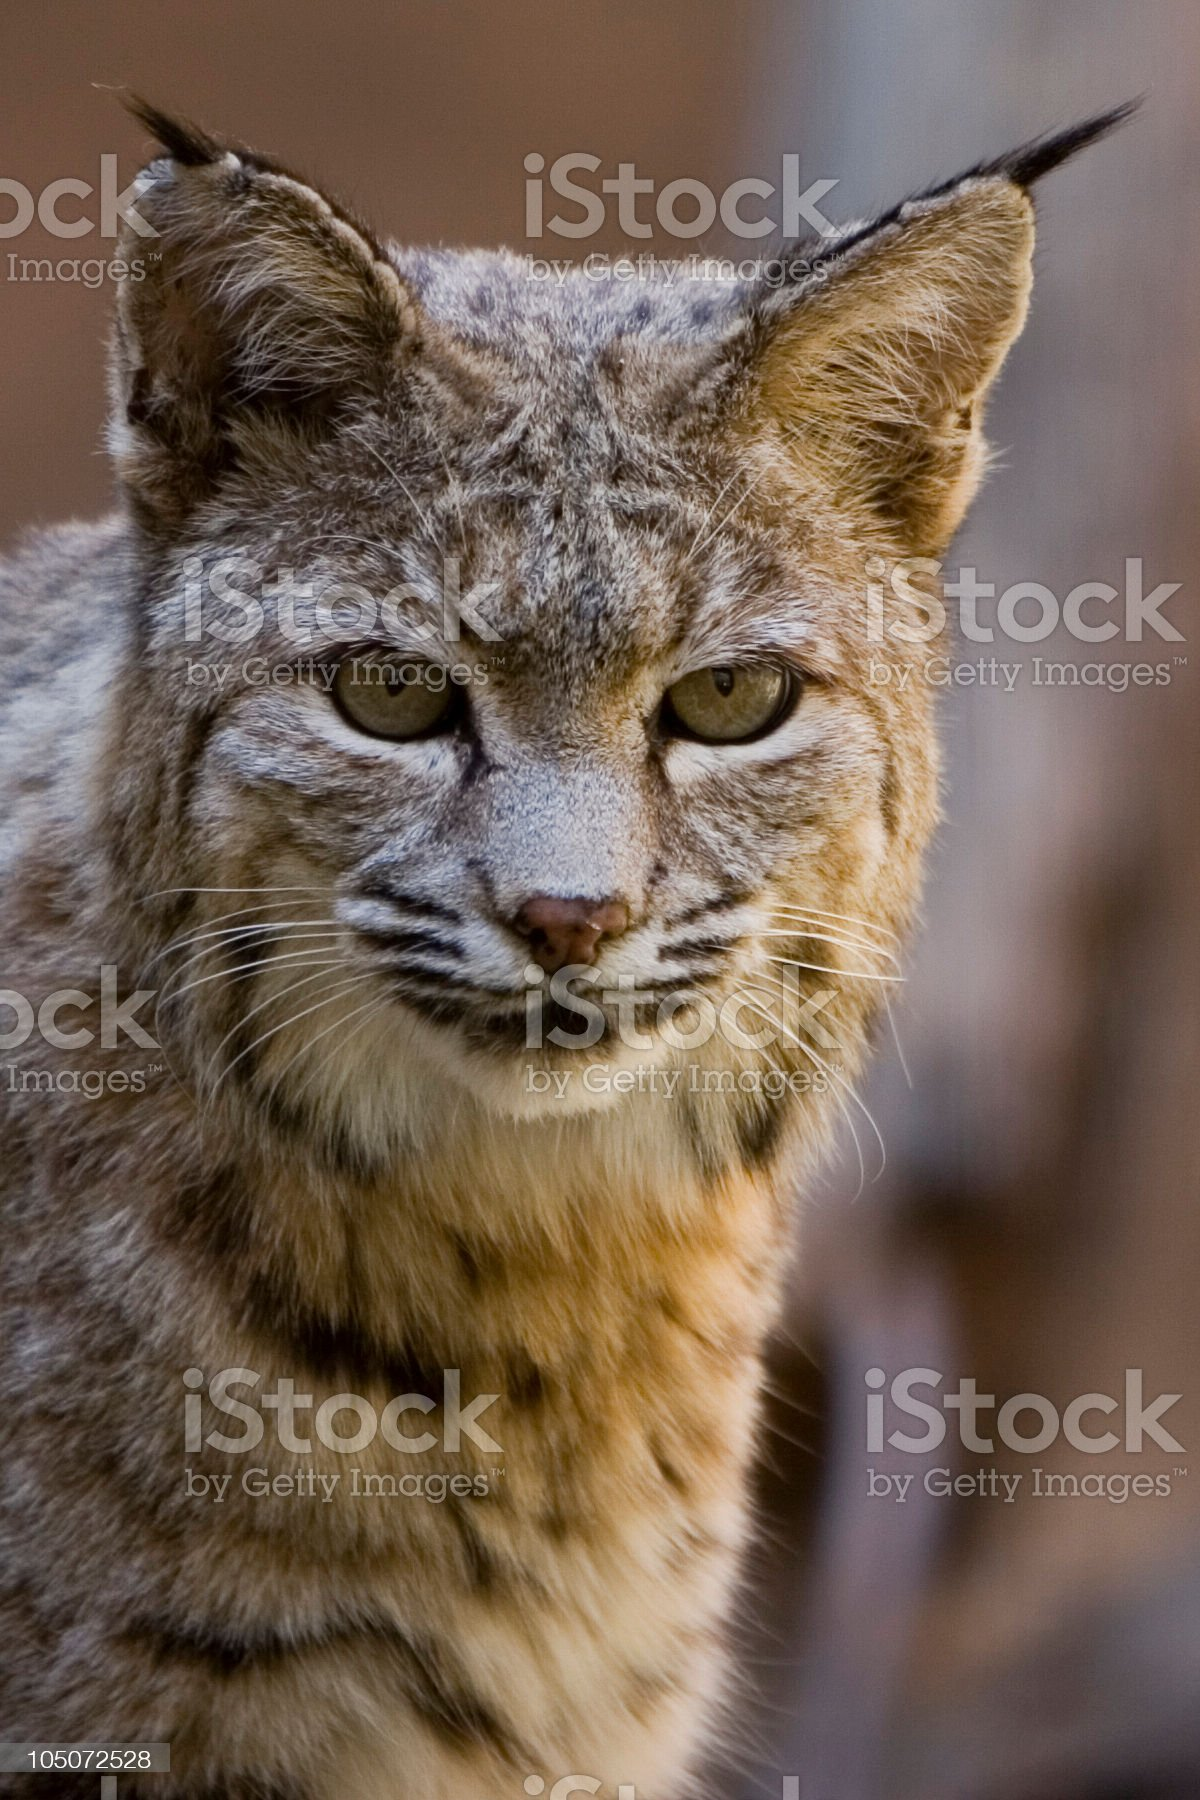 Bobcat Stare royalty-free stock photo